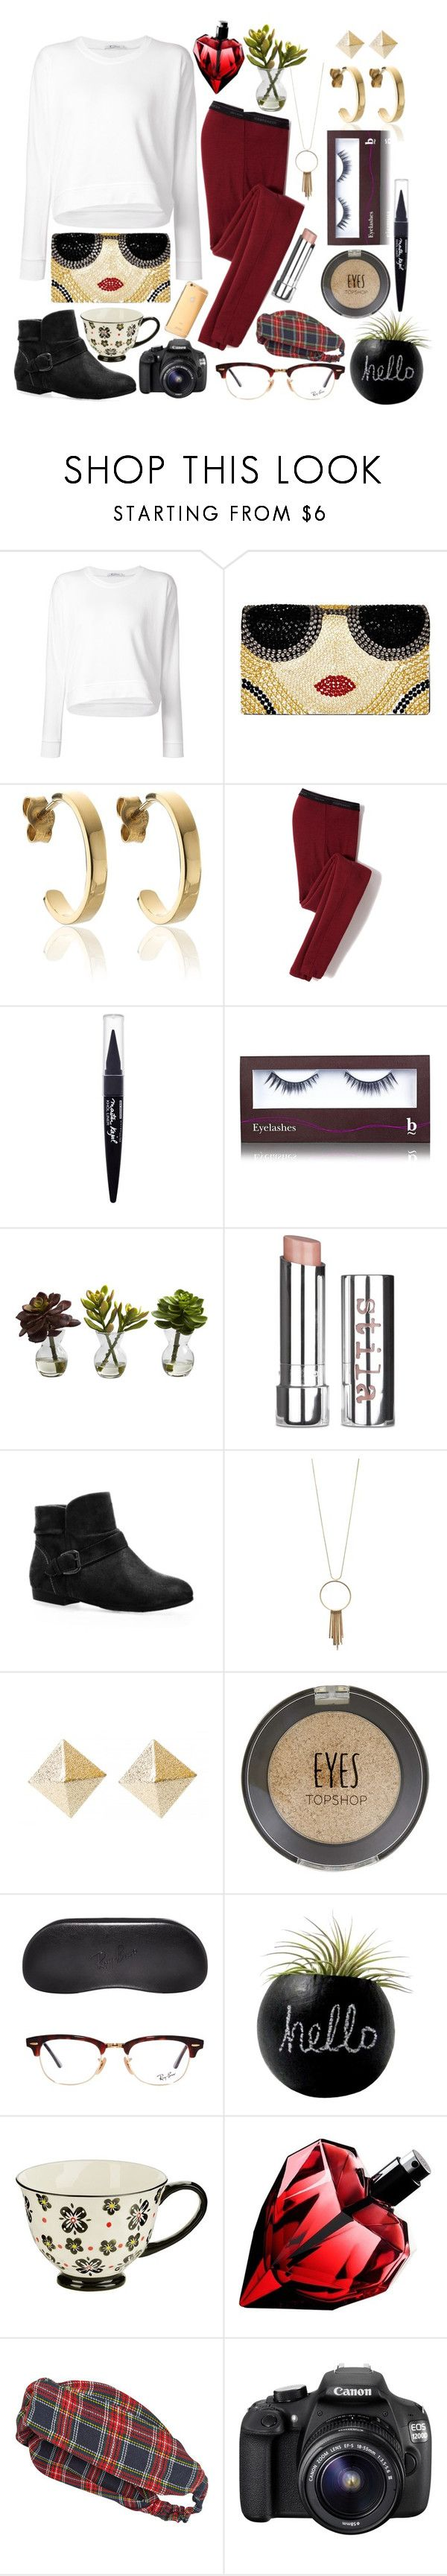 """""""Marooned"""" by katherine-loves-soup ❤ liked on Polyvore featuring Mode, T By Alexander Wang, Alice + Olivia, BAM-B, Icebreaker, Maybelline, BBrowBar, Nearly Natural, Stila und Avenue"""